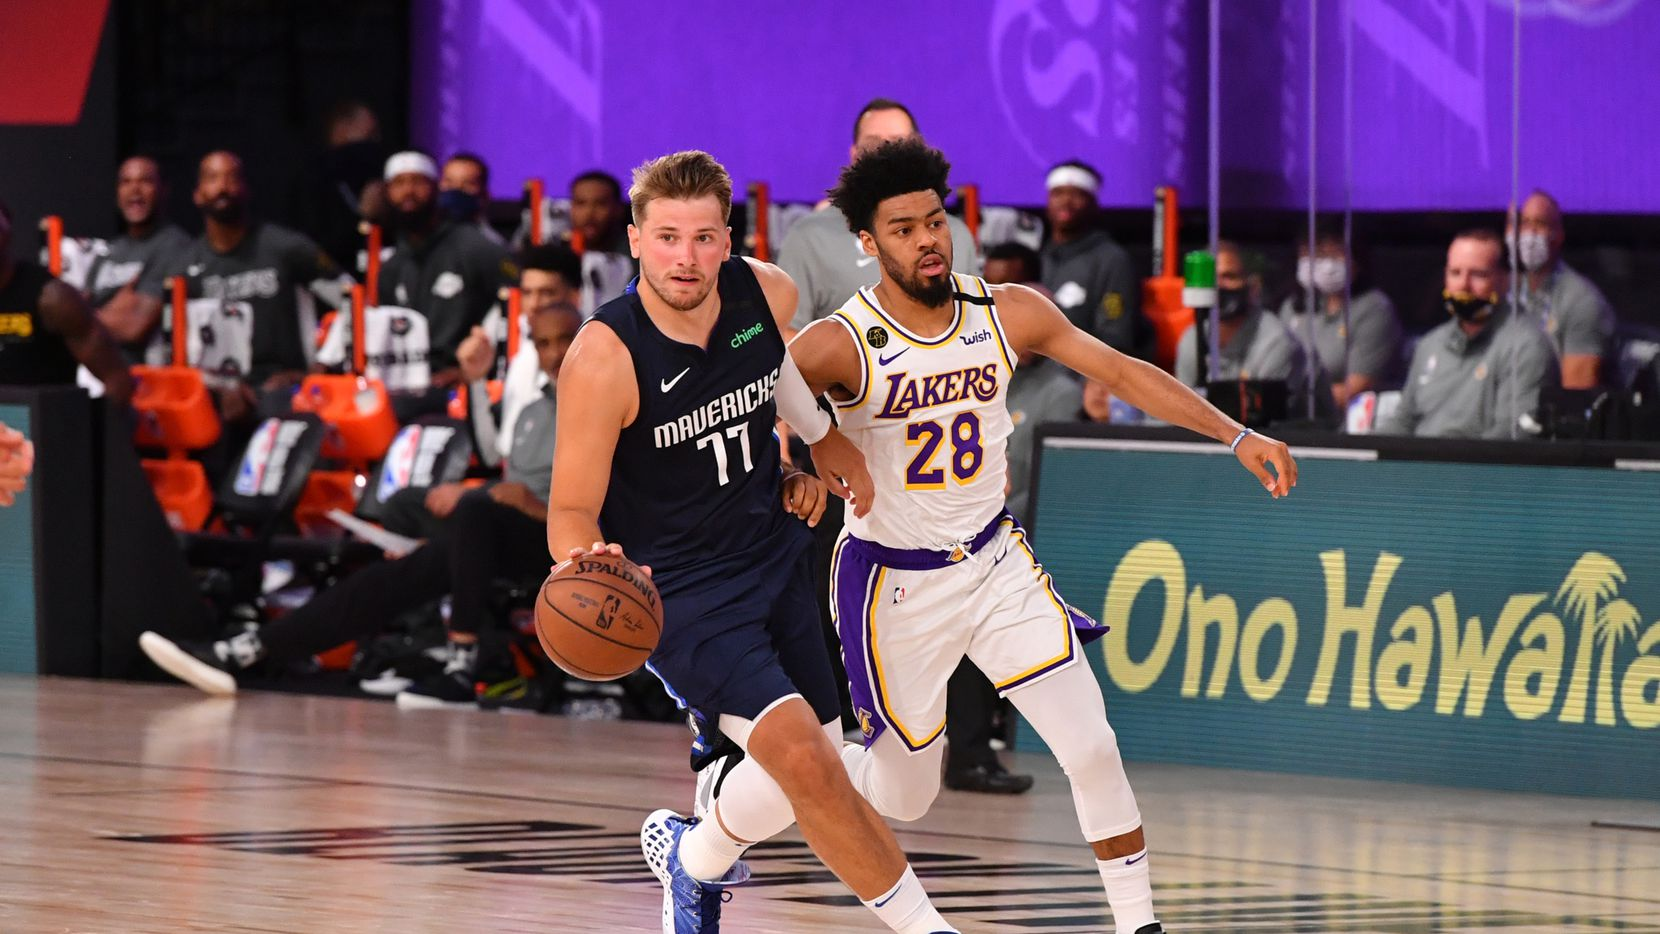 Luka Doncic #77 of the Dallas Mavericks drives to the basket against the Los Angeles Lakers on July 23, 2020 at the Visa Athletic Center at ESPN Wide World of Sports Complex in Orlando, Florida.